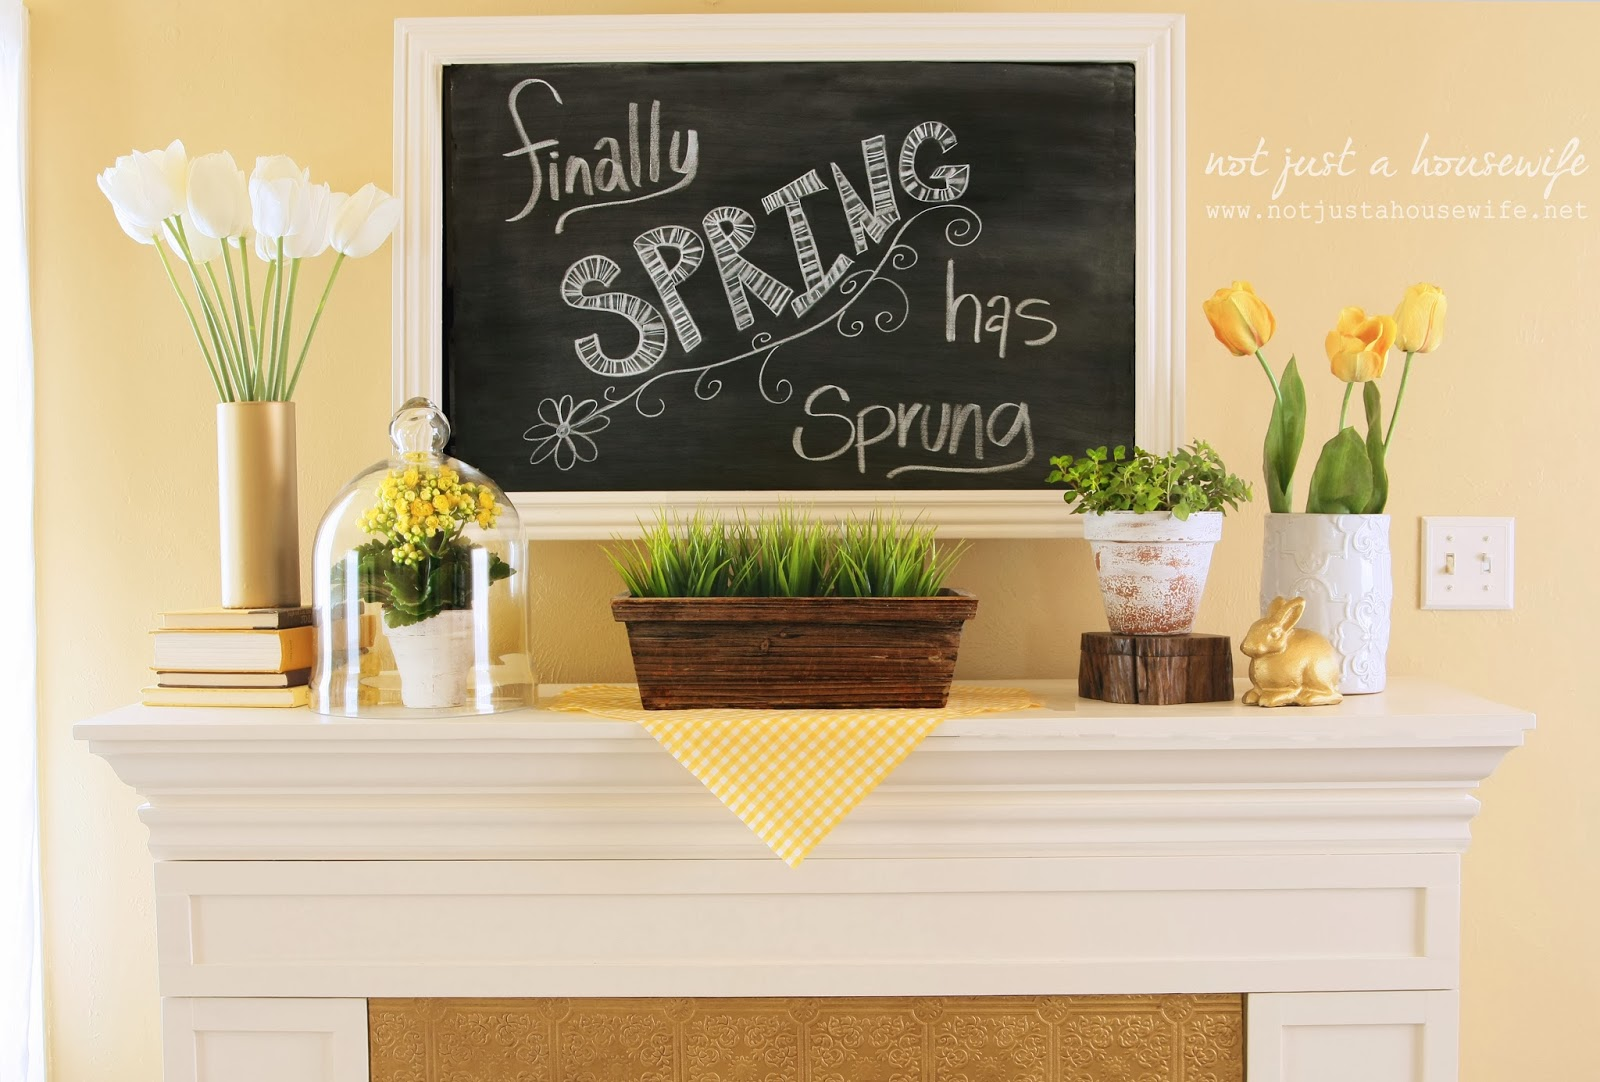 Spring Mantle ideas for Blog with the Browns